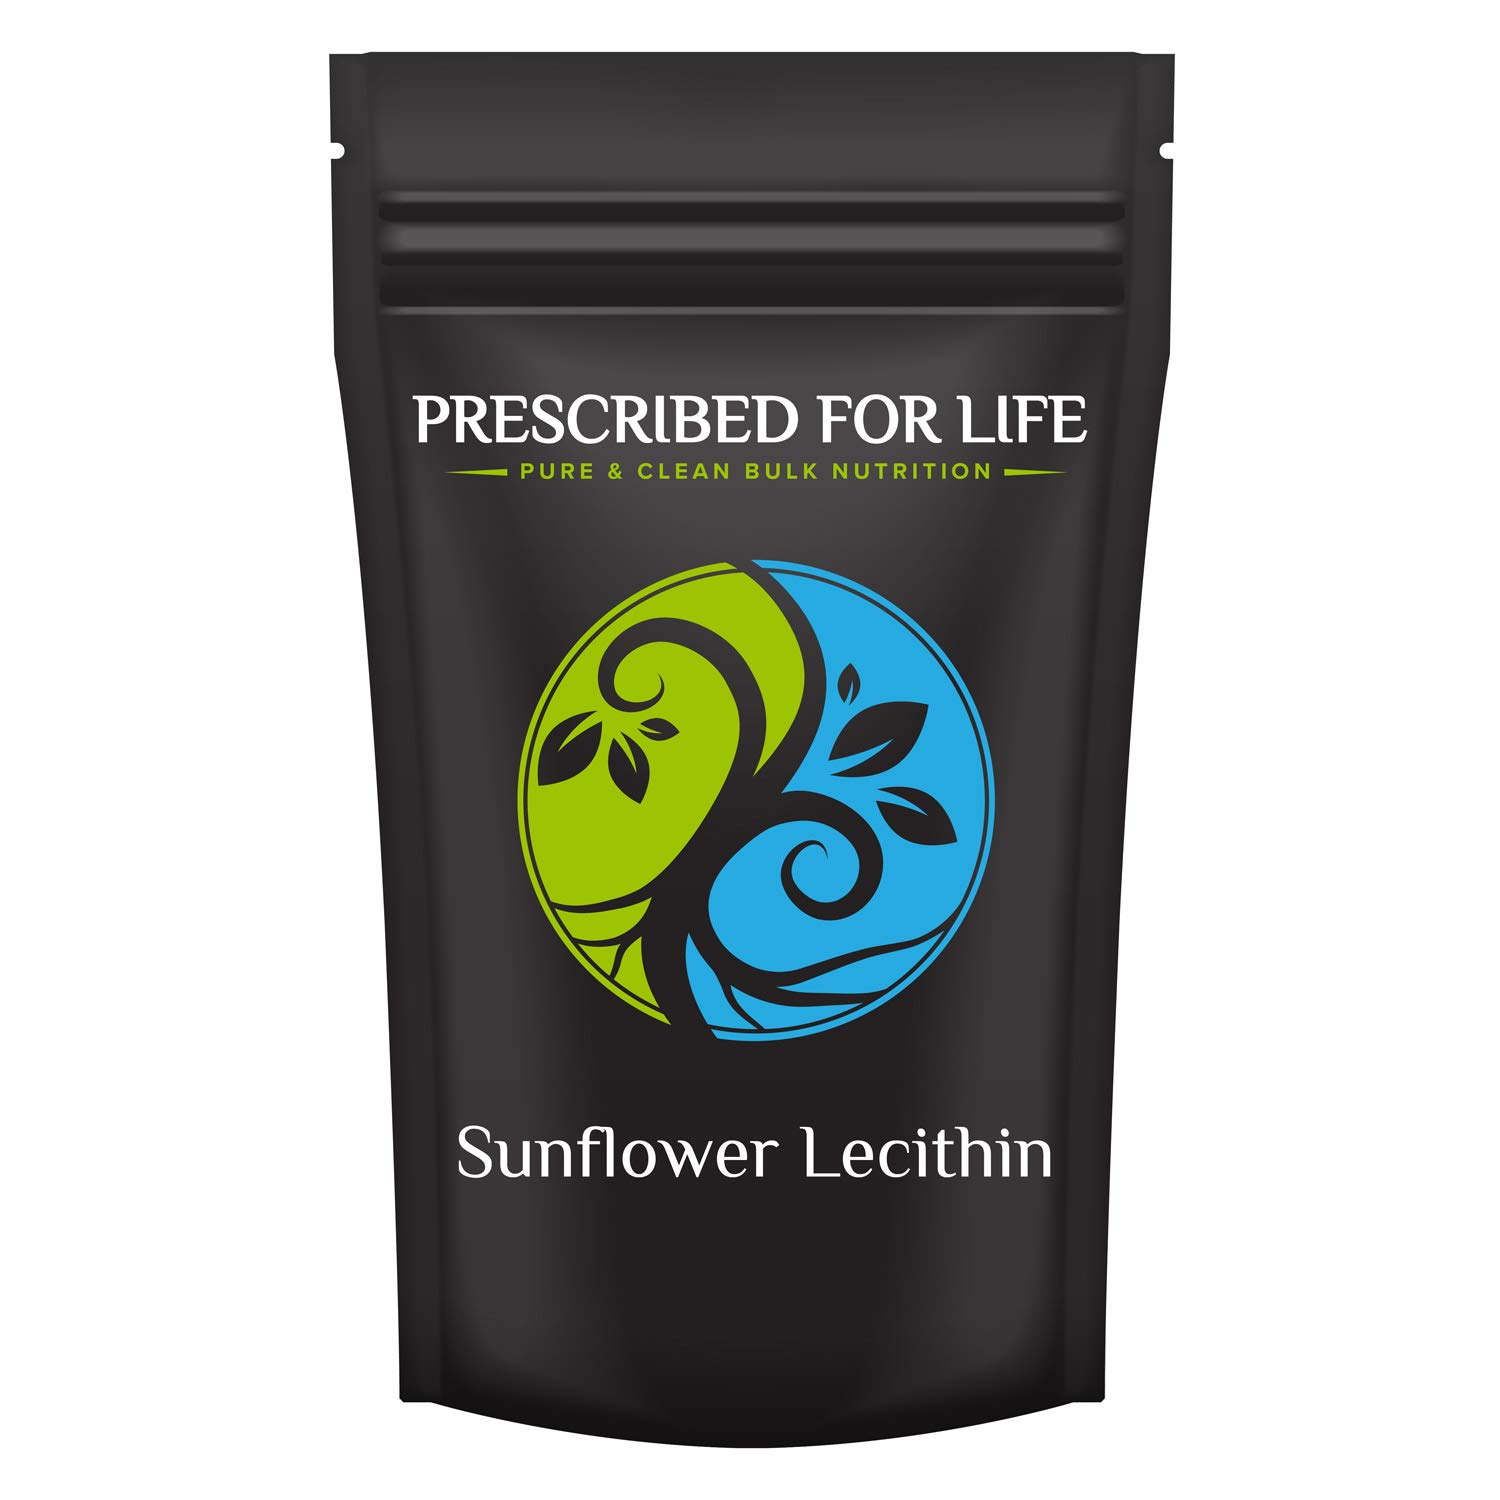 Prescribed for Life Sunflower Lecithin Powder (4 oz / 113 g) | Natural, Unbleached, Gluten Free, Vegan, Non-GMO, Soy Free, Kosher, No Fillers | Naturally Rich in Choline & Essential Fatty Acids